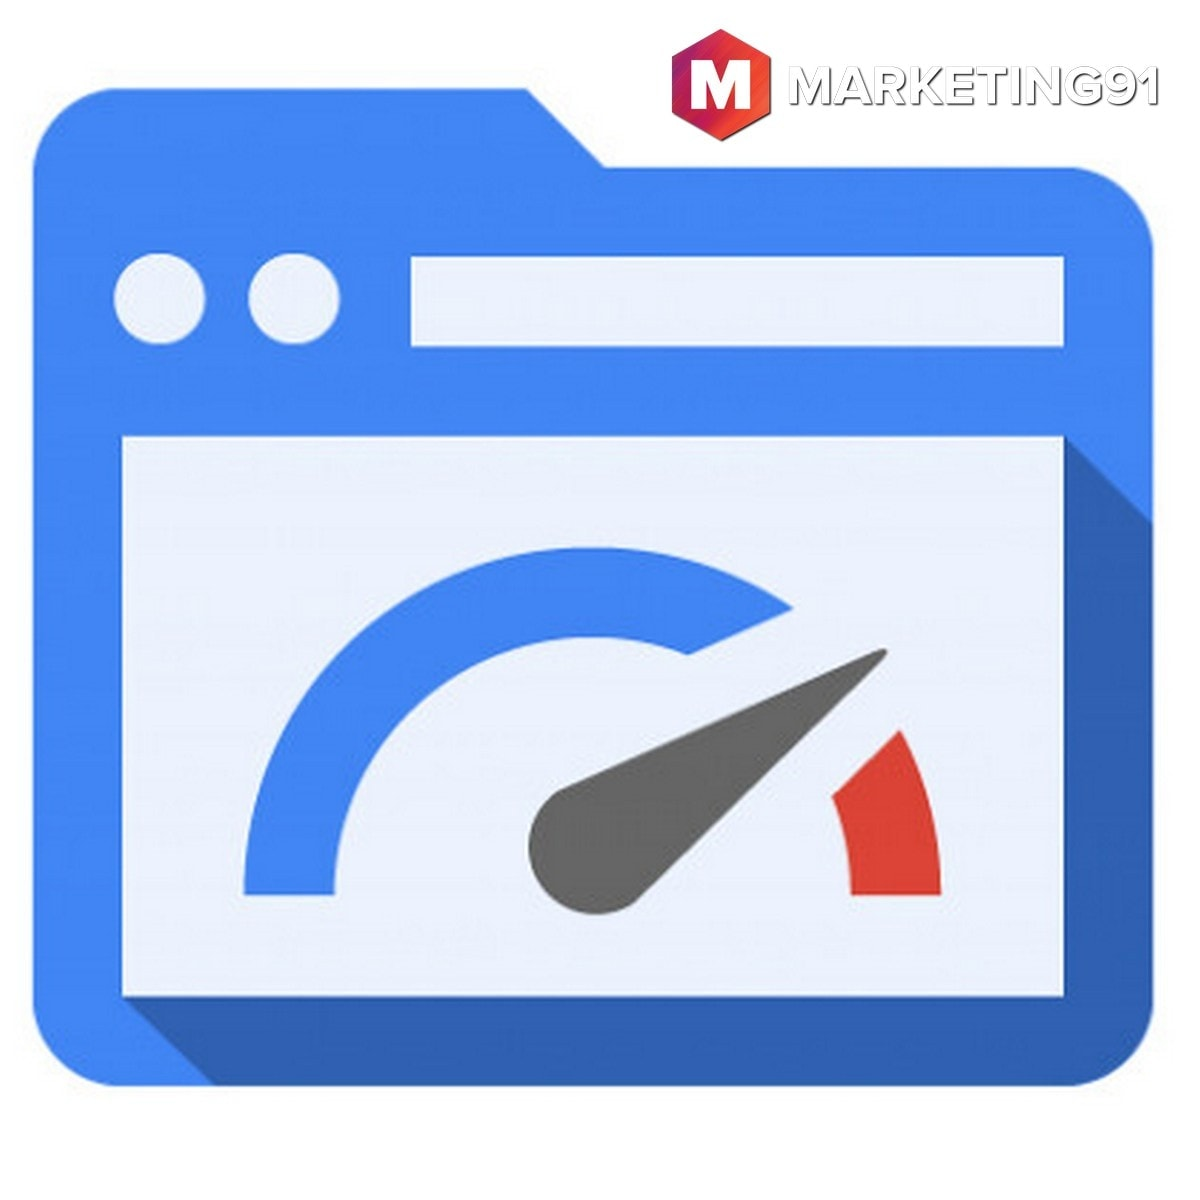 #10. Know the tools for testing Page Speed